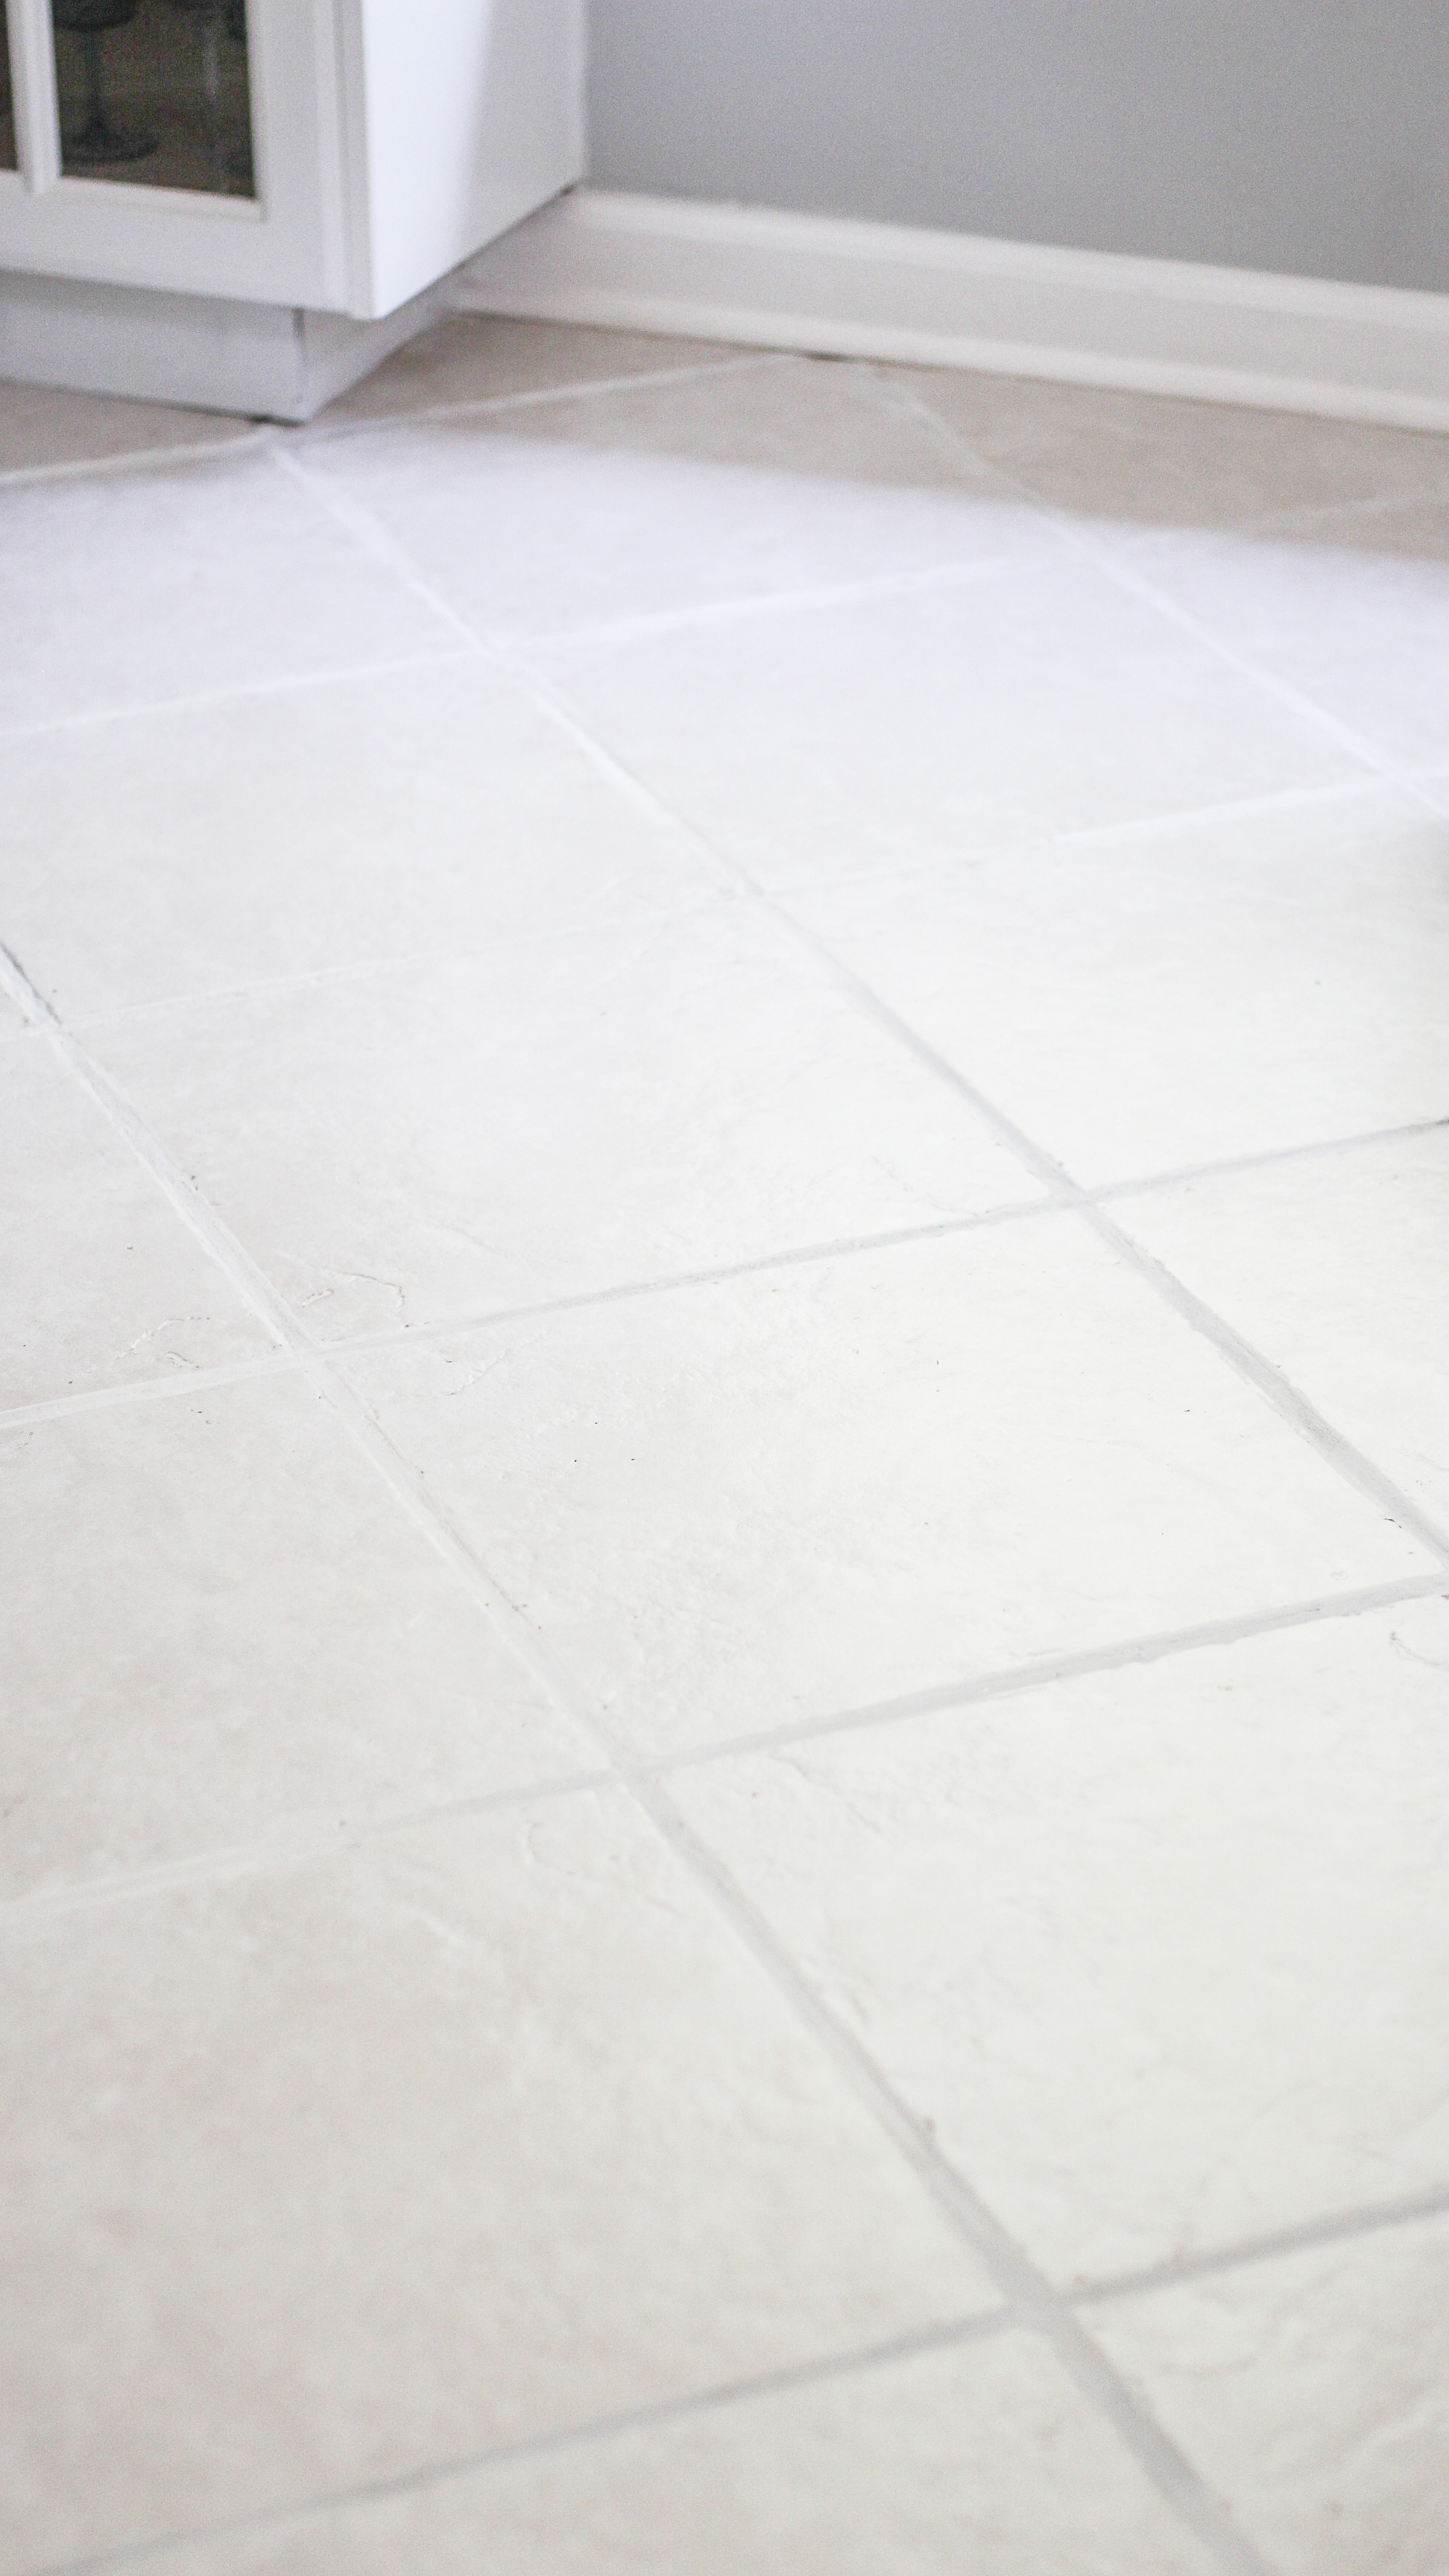 Black and white ceramic tile floor Hexagon The Easiest Way To Clean Ceramic Tile Floors With Grout Haze Designing Vibes The Easiest Way To Clean Filthy Neglected Tile Flooring